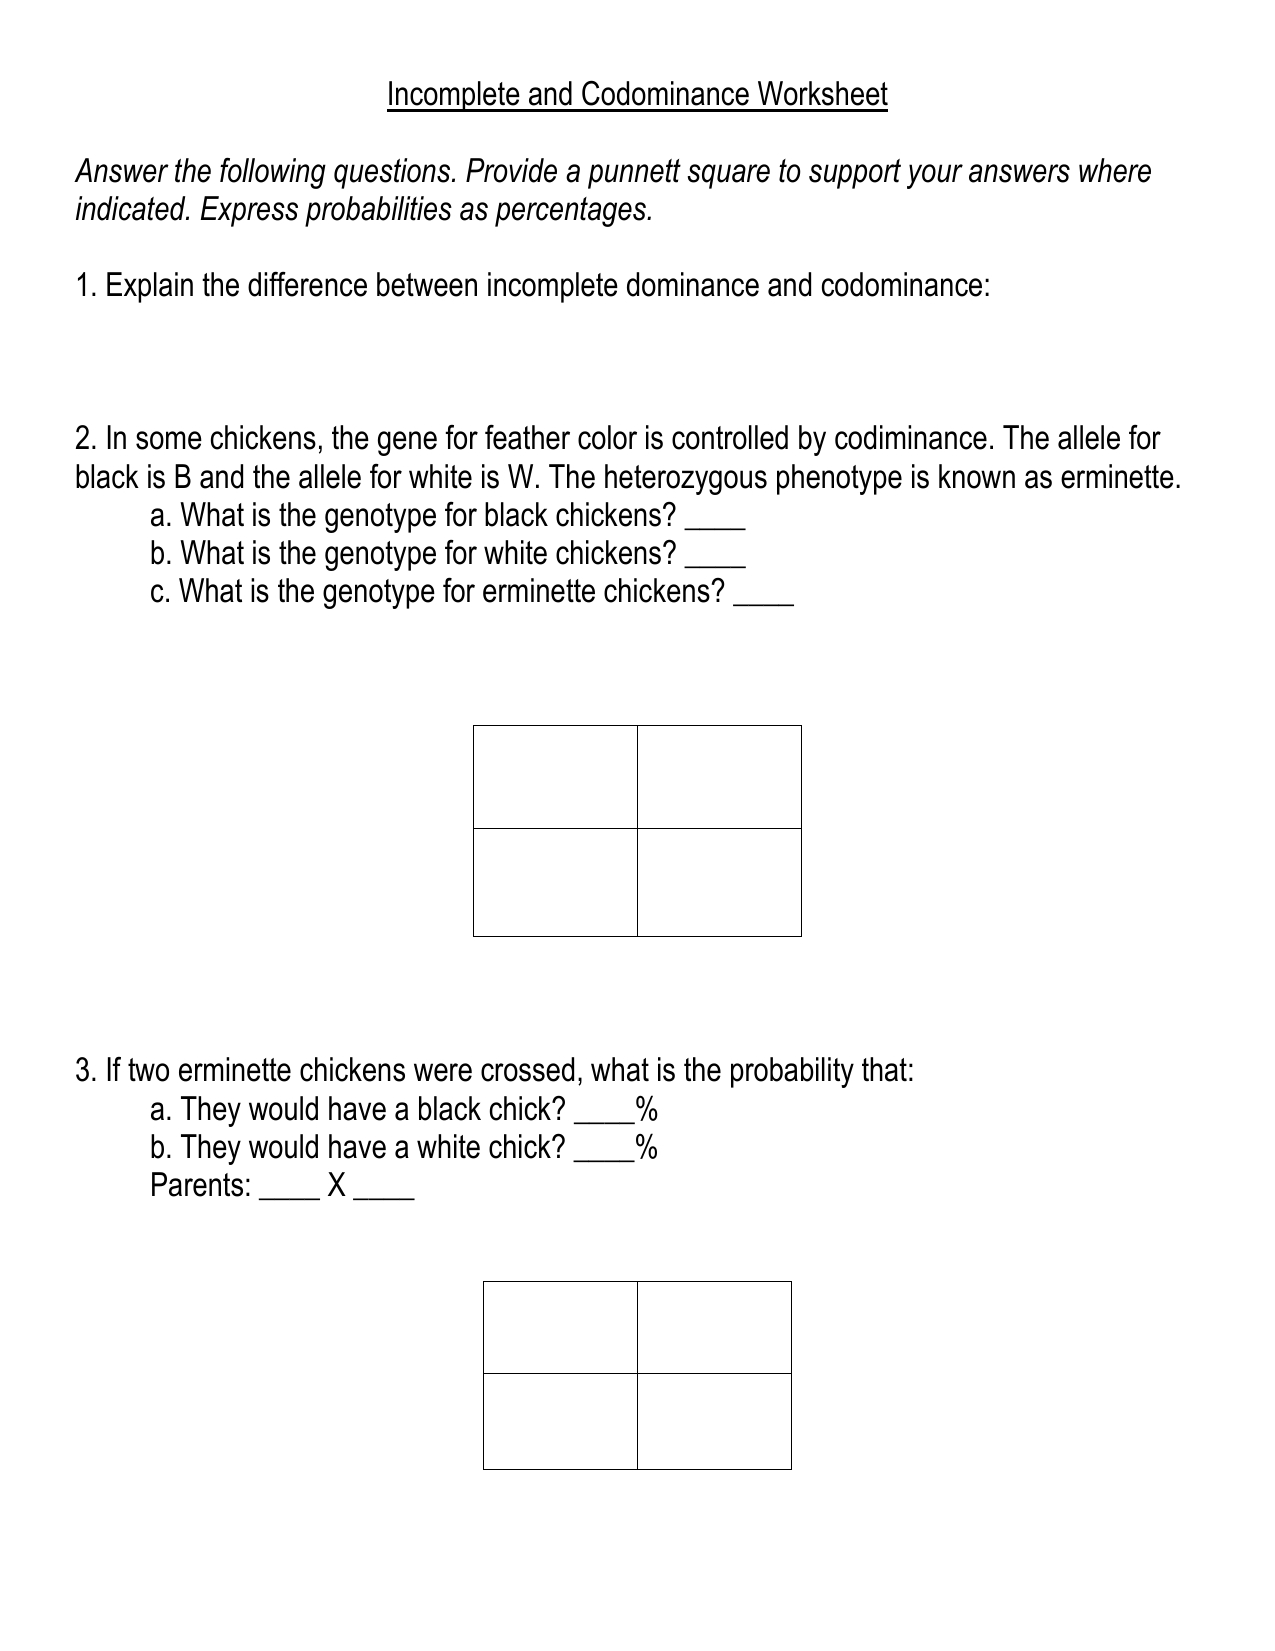 Incomplete And Codominance Worksheet Inside Incomplete And Codominance Worksheet